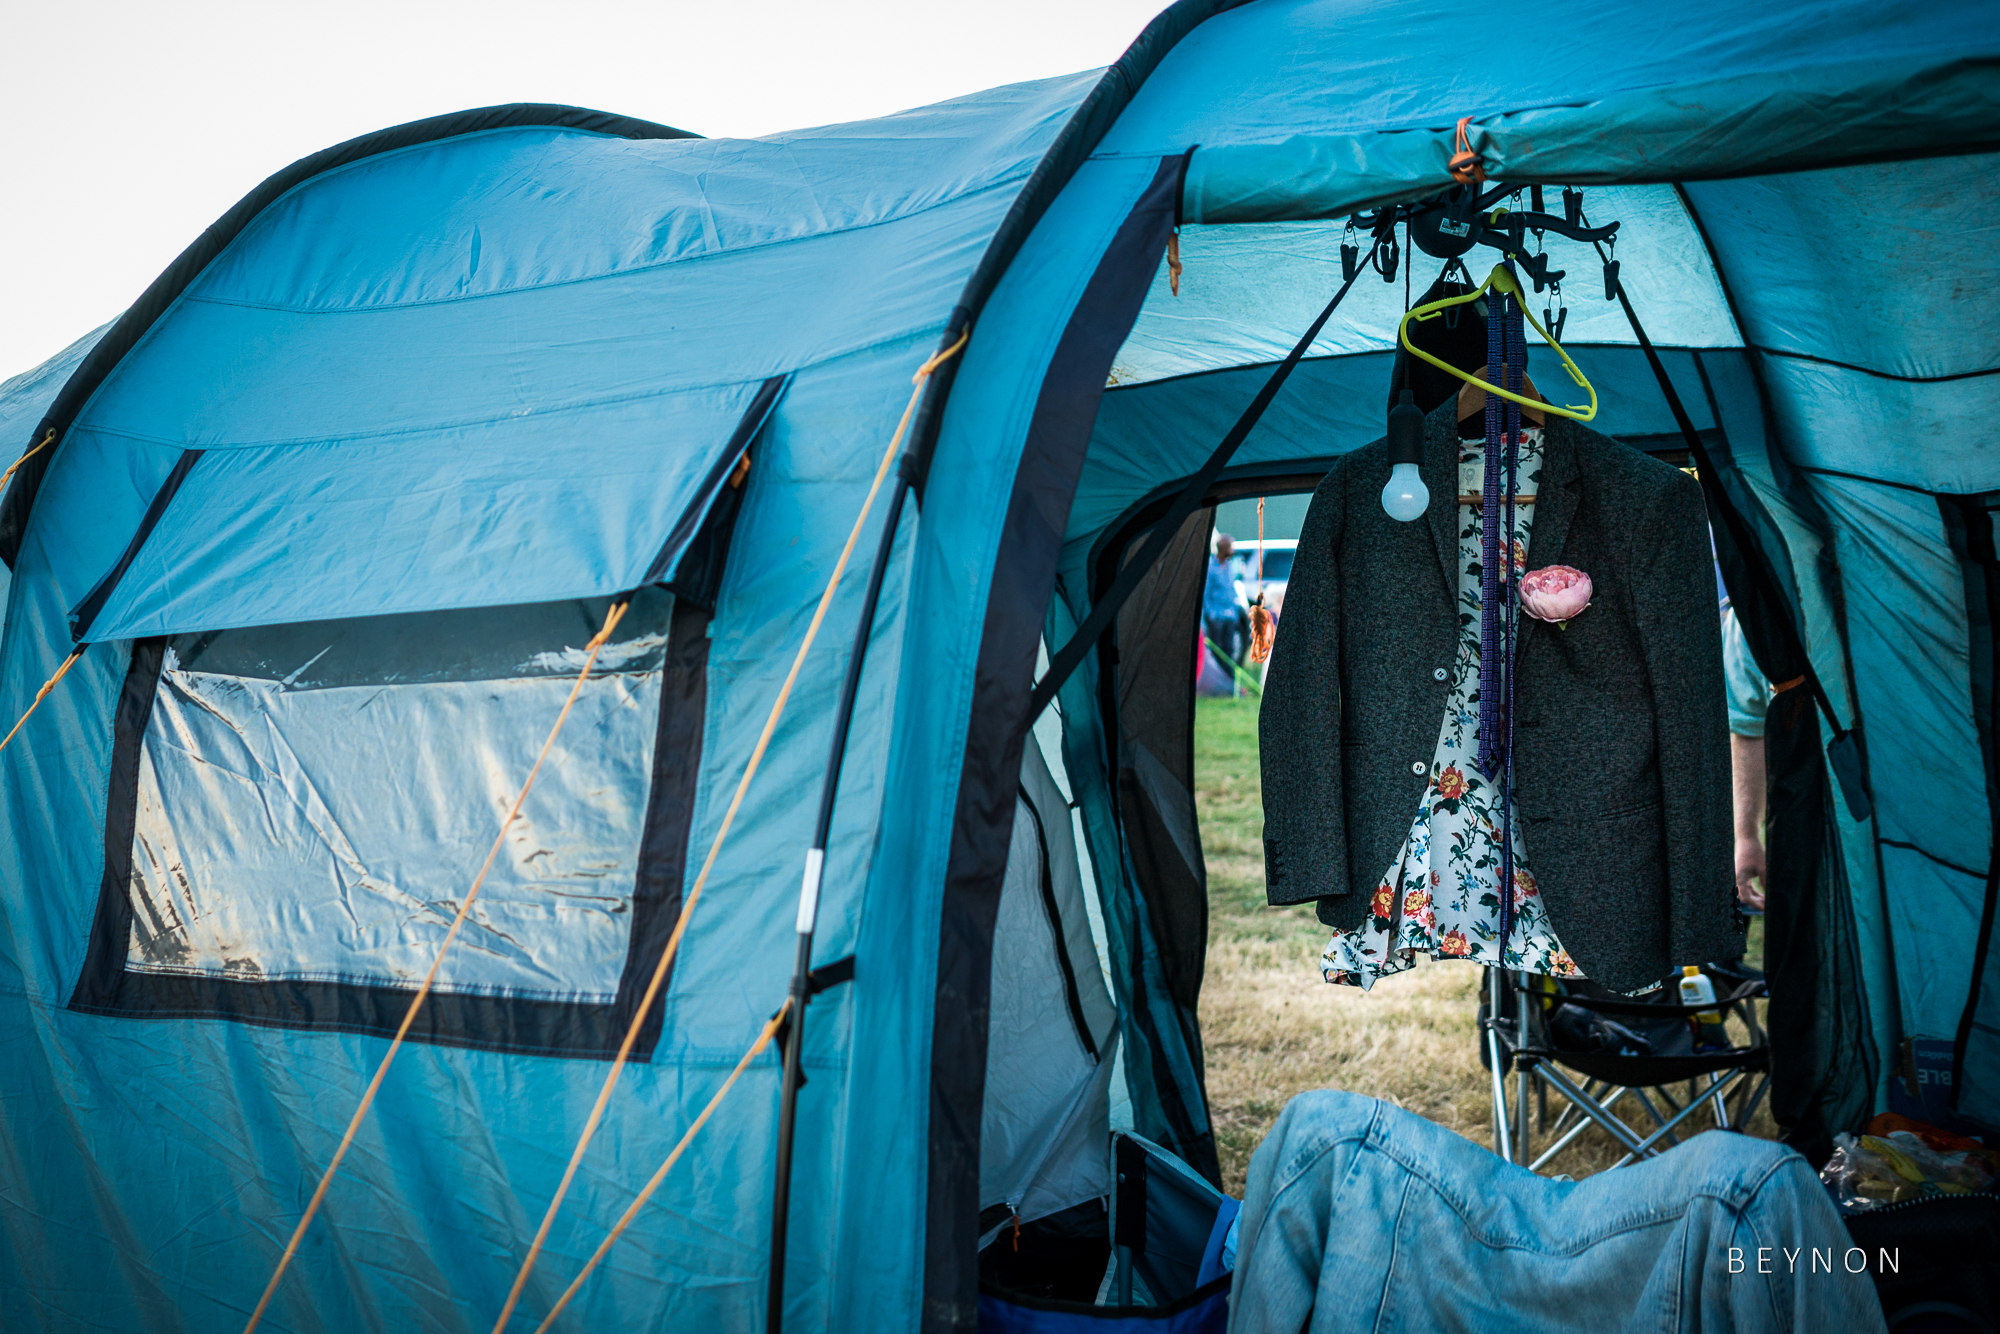 Wedding suit hanging up inside tent